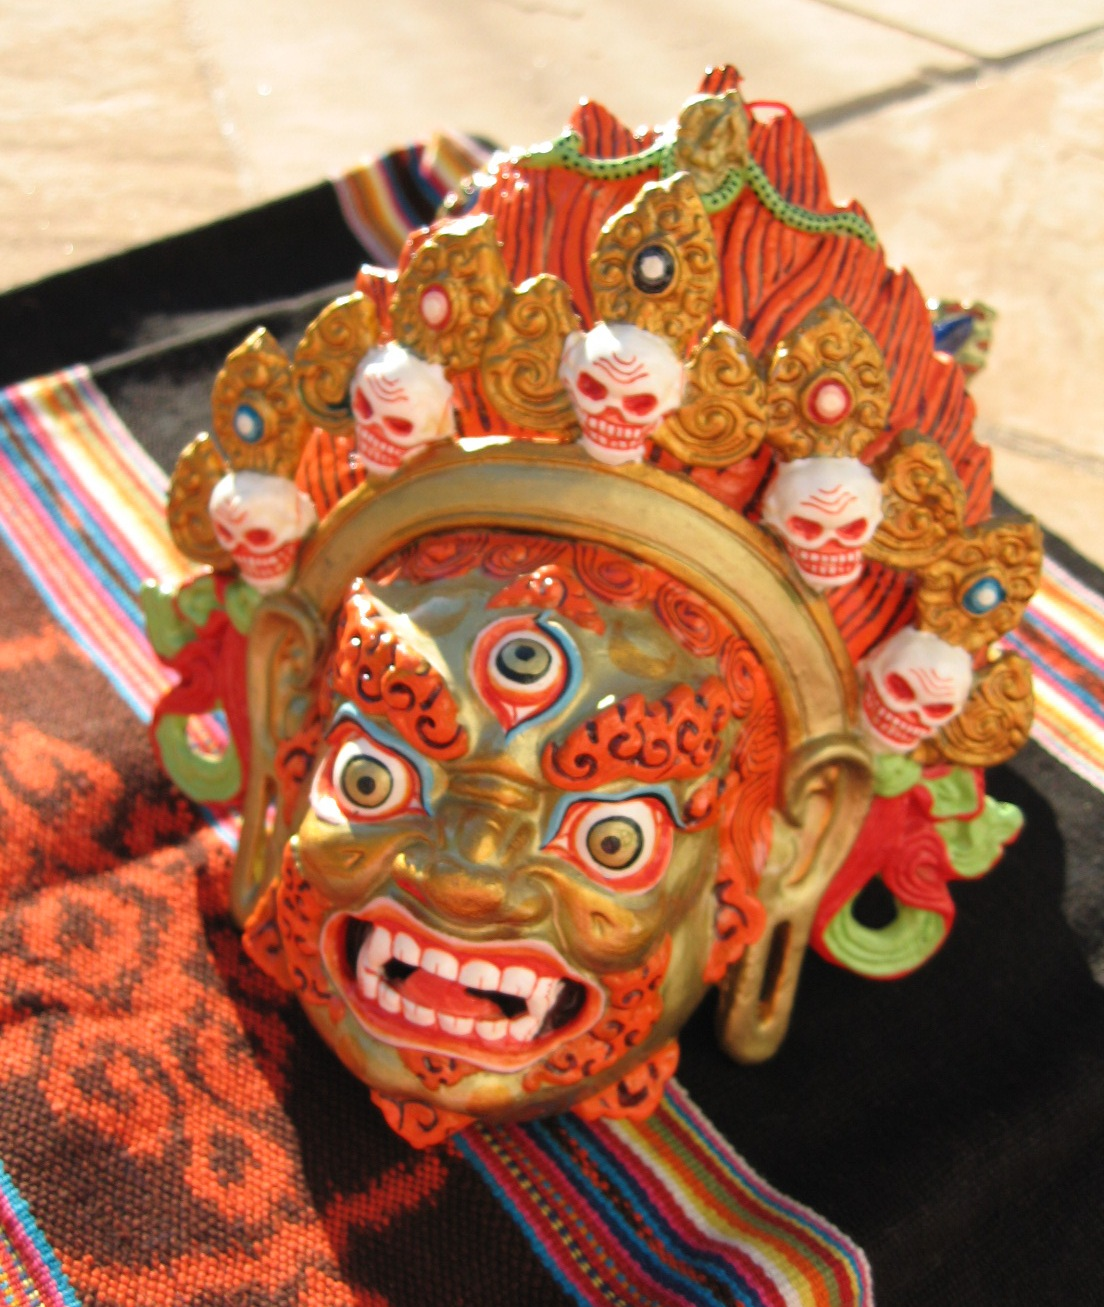 Tibetan Wrathful Deity Mask